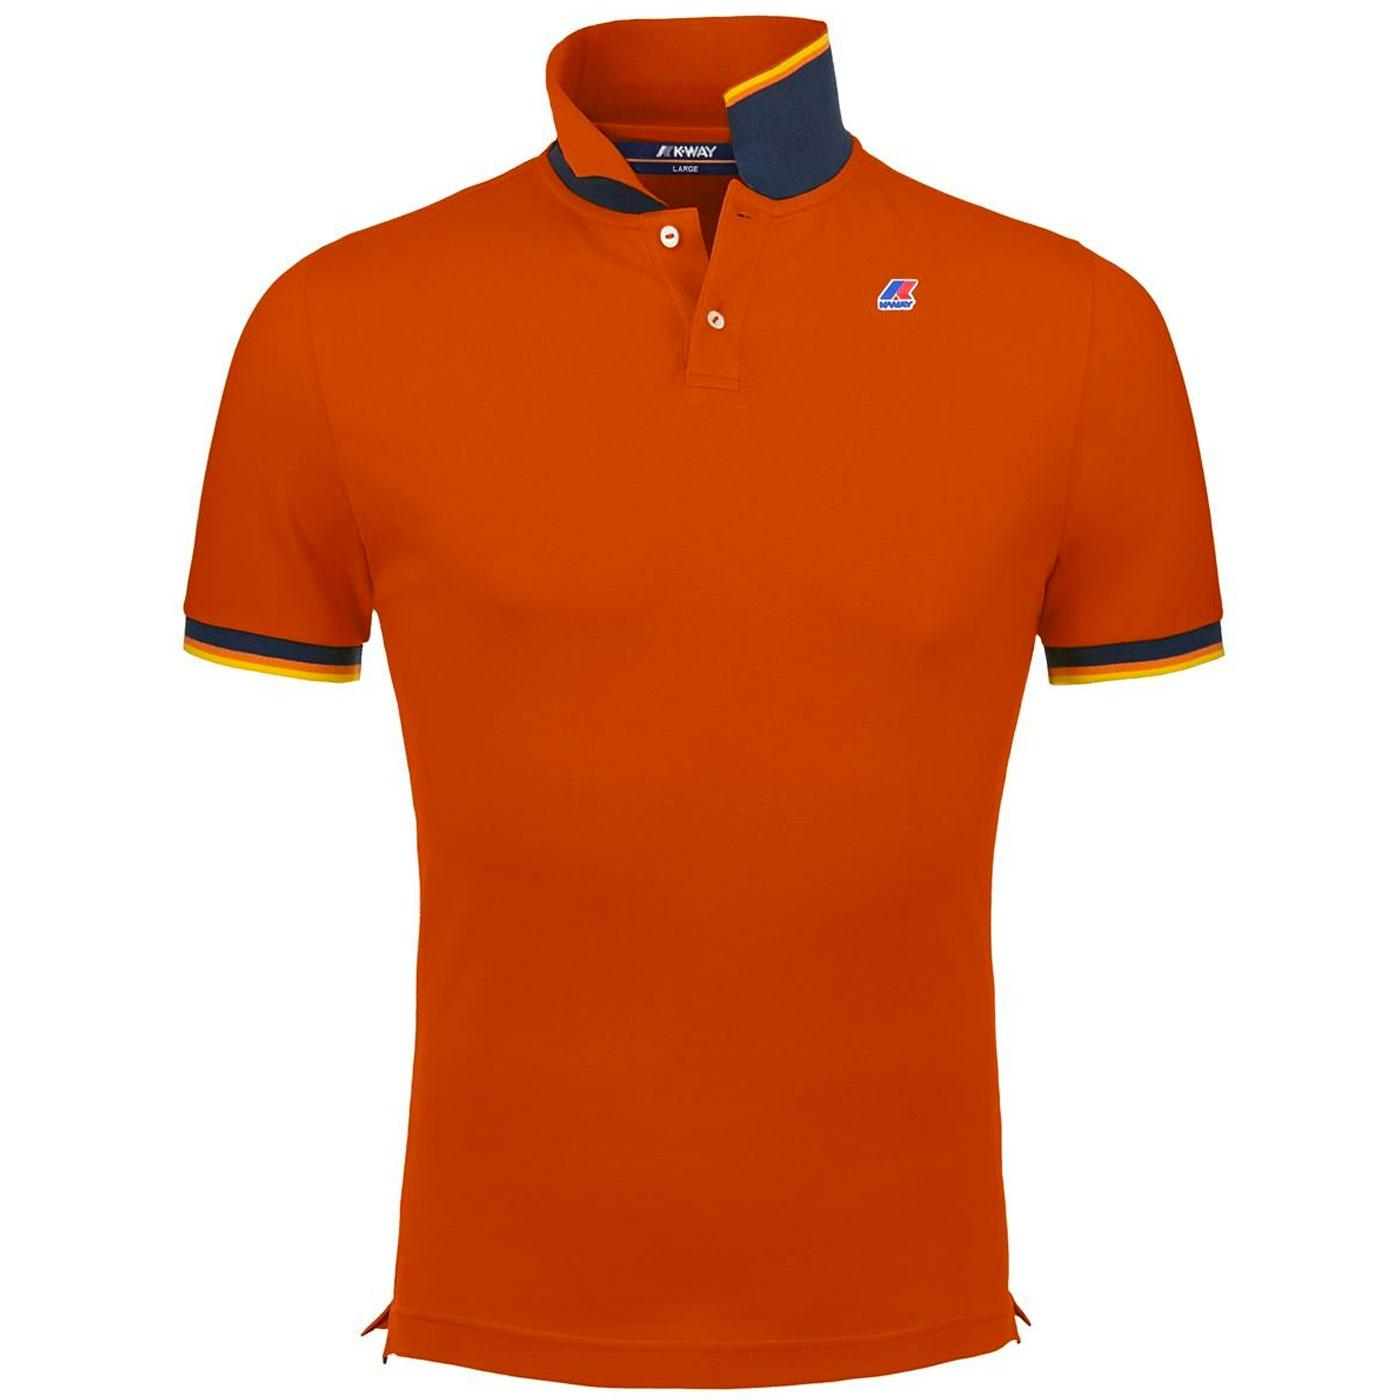 Vincent K-WAY Men's Retro Pique Polo Top (Orange)